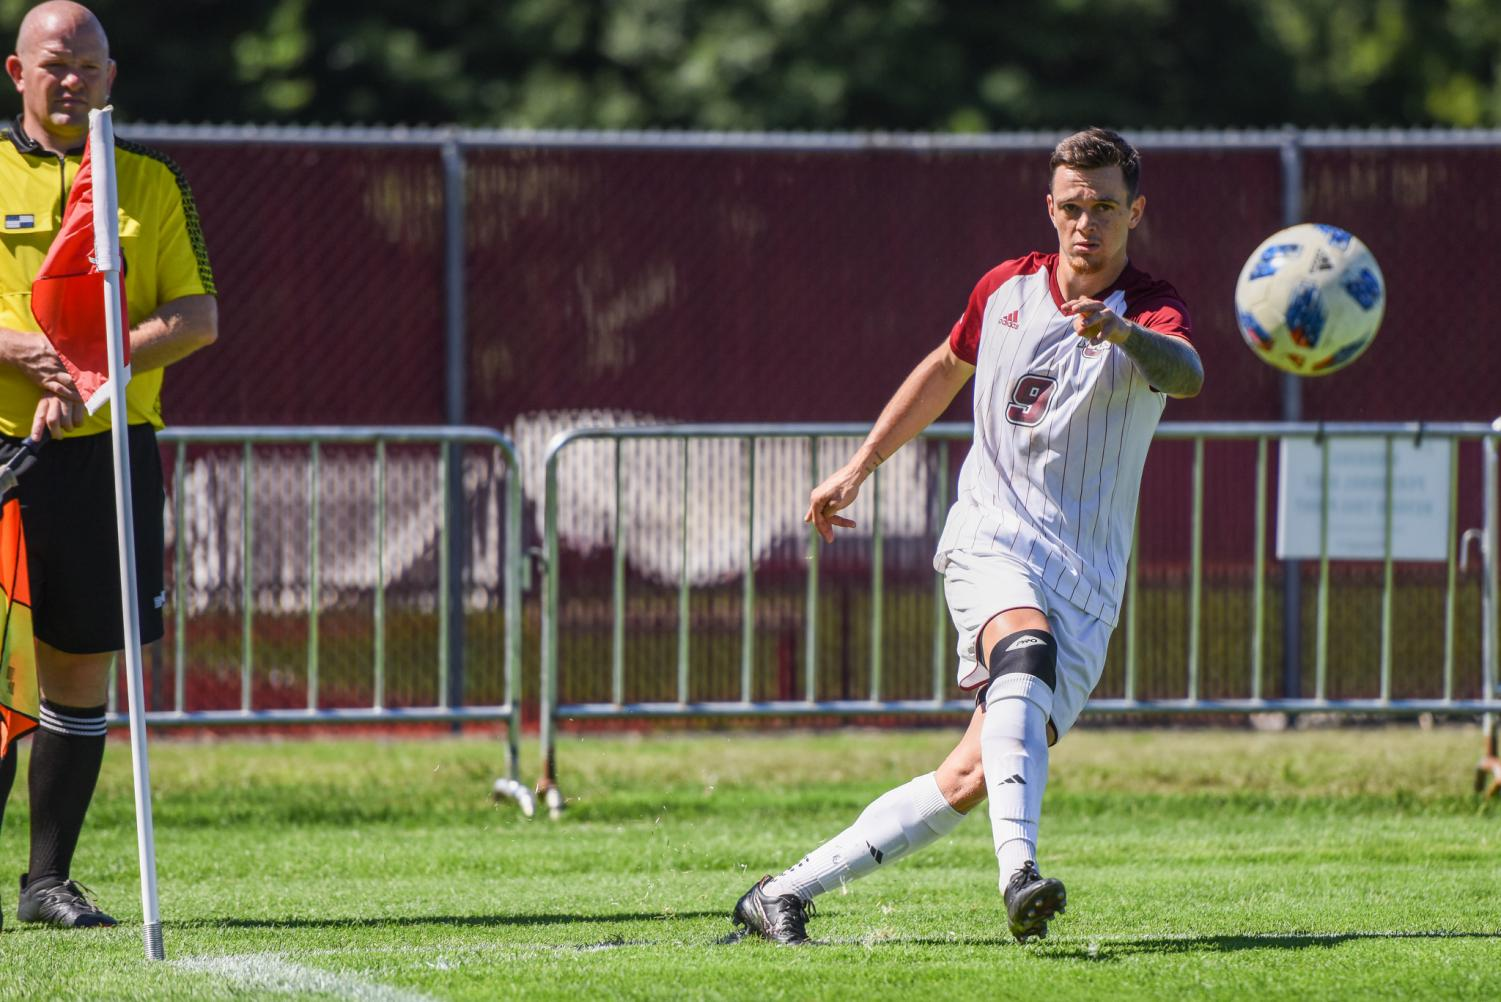 Jack Fulton inserts a corner kick against Central Connecticut State on Saturday, September 15, 2018. Fulton scored two penalty kick goals as UMass beat CCSU 5-2.